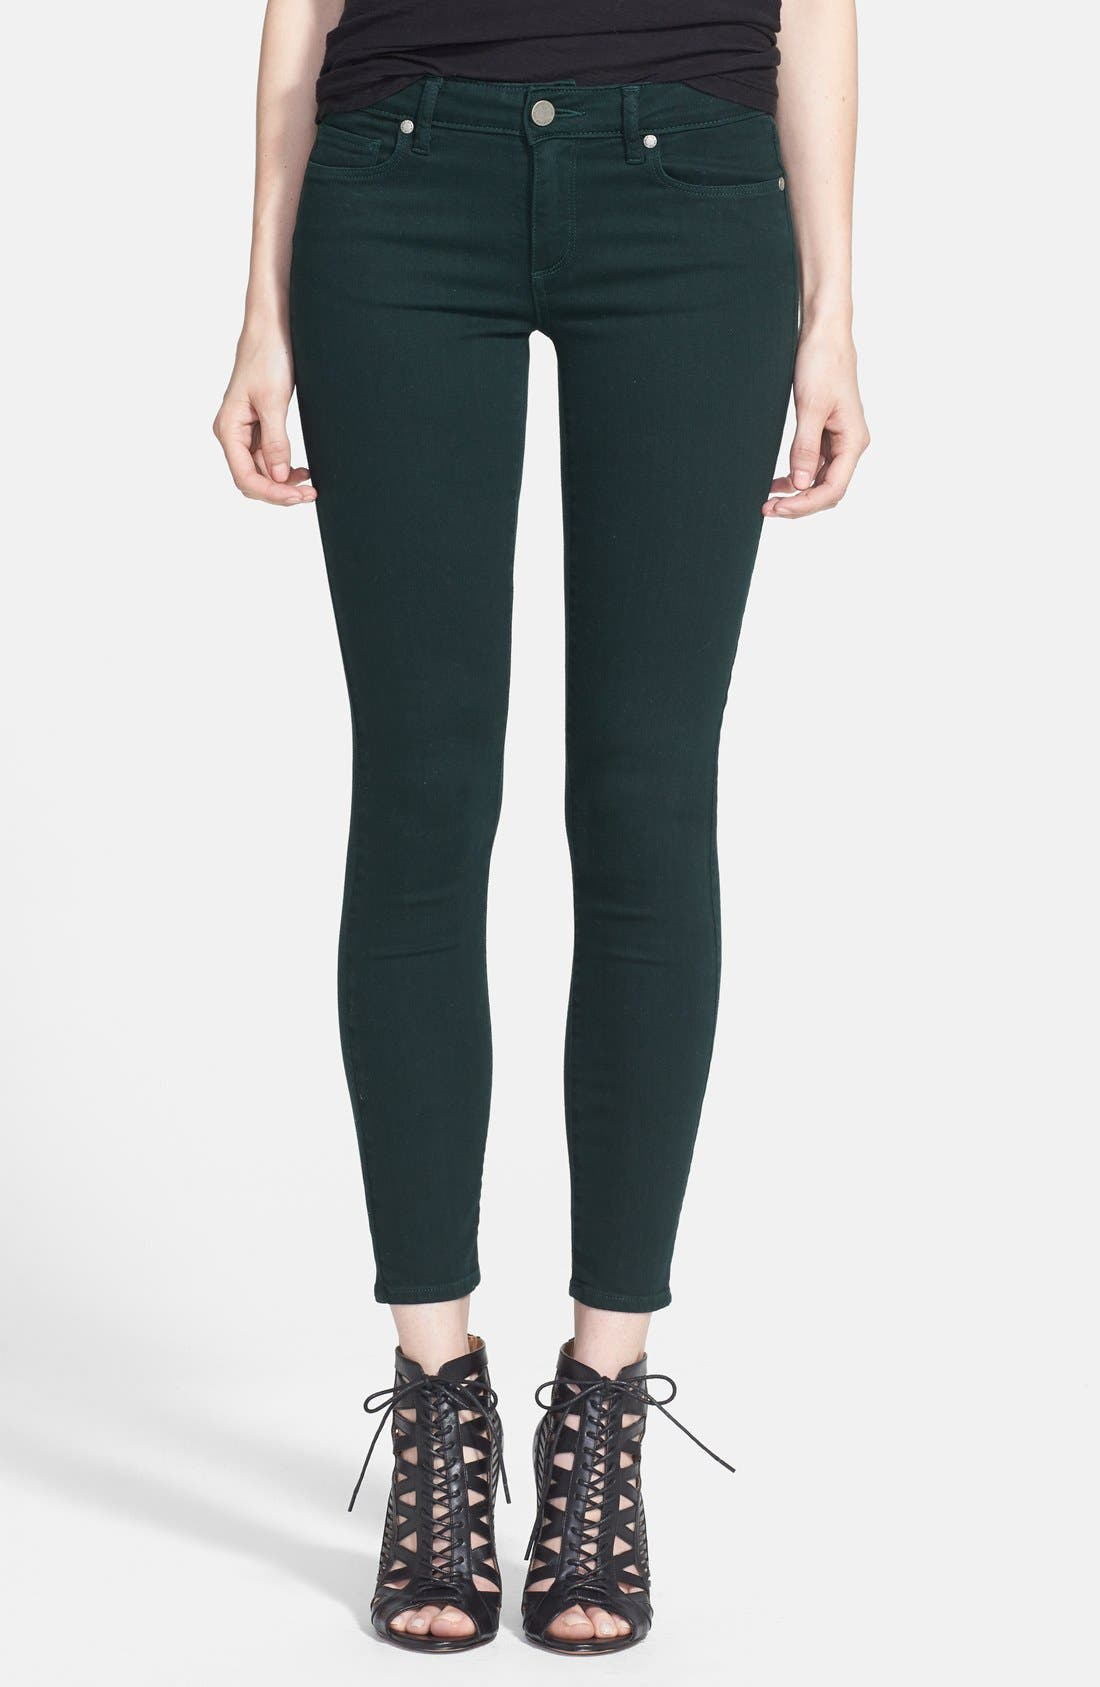 Forest green skinny jeans h&m